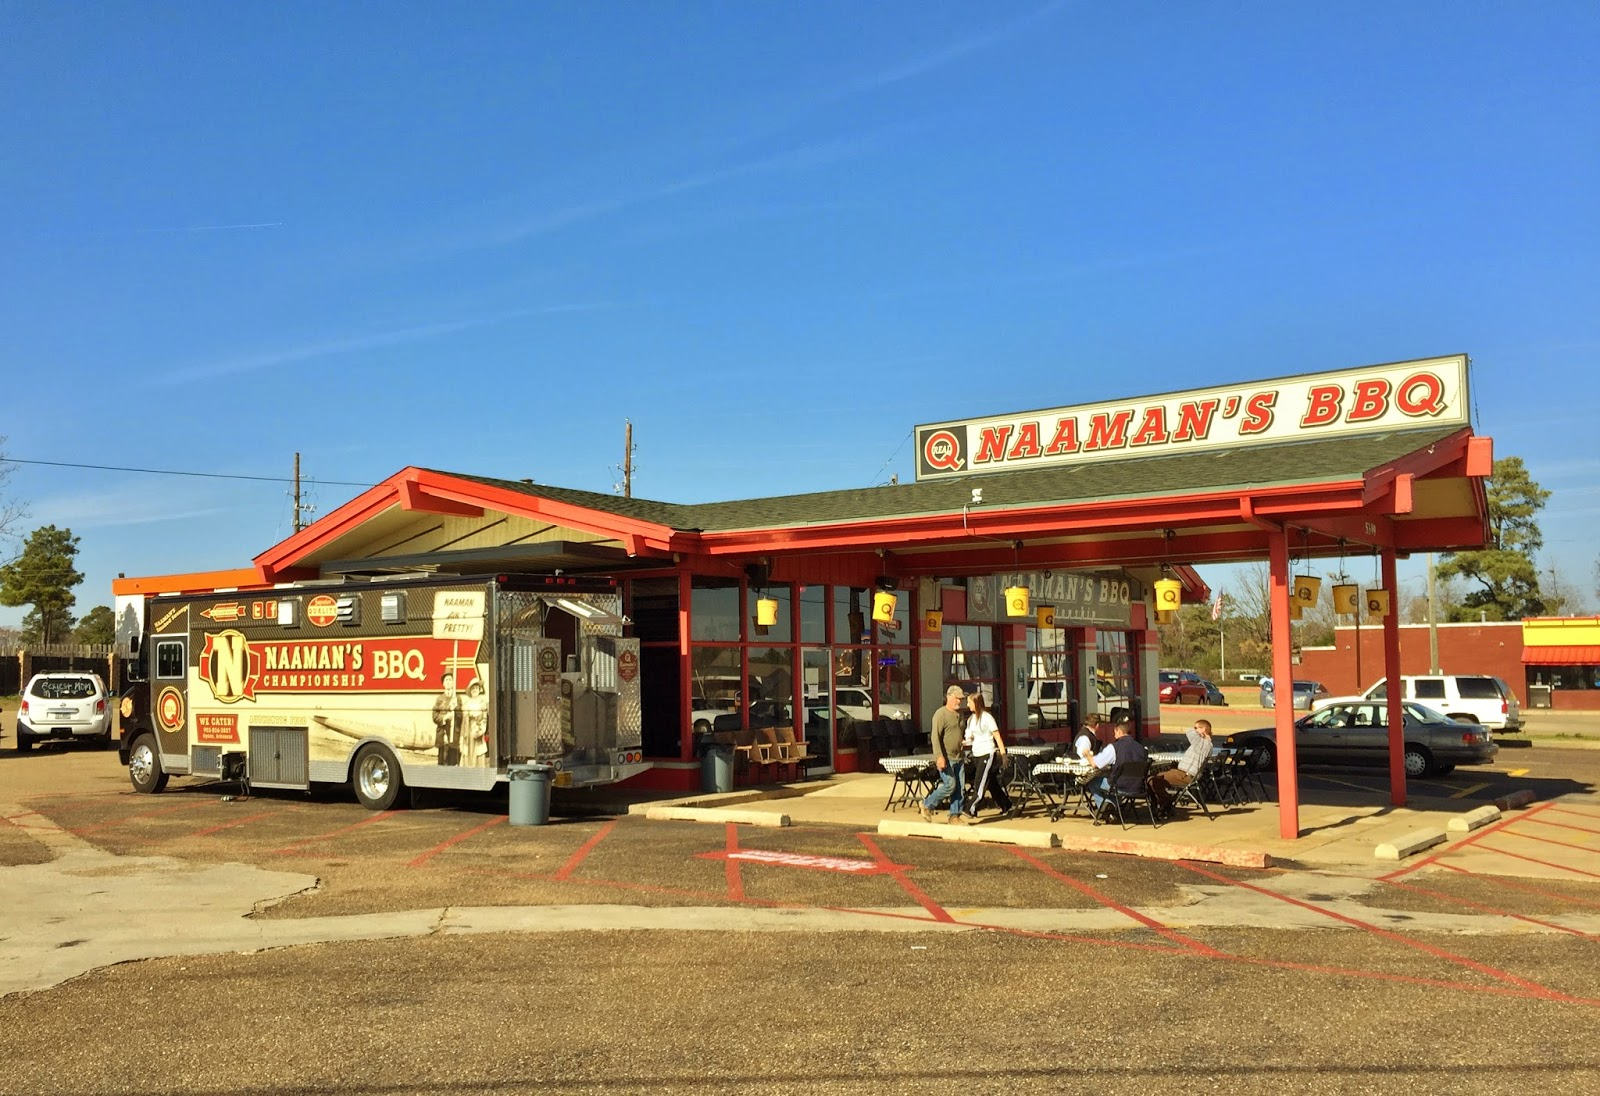 Naaman's old BBQ truck is still central in their new operation